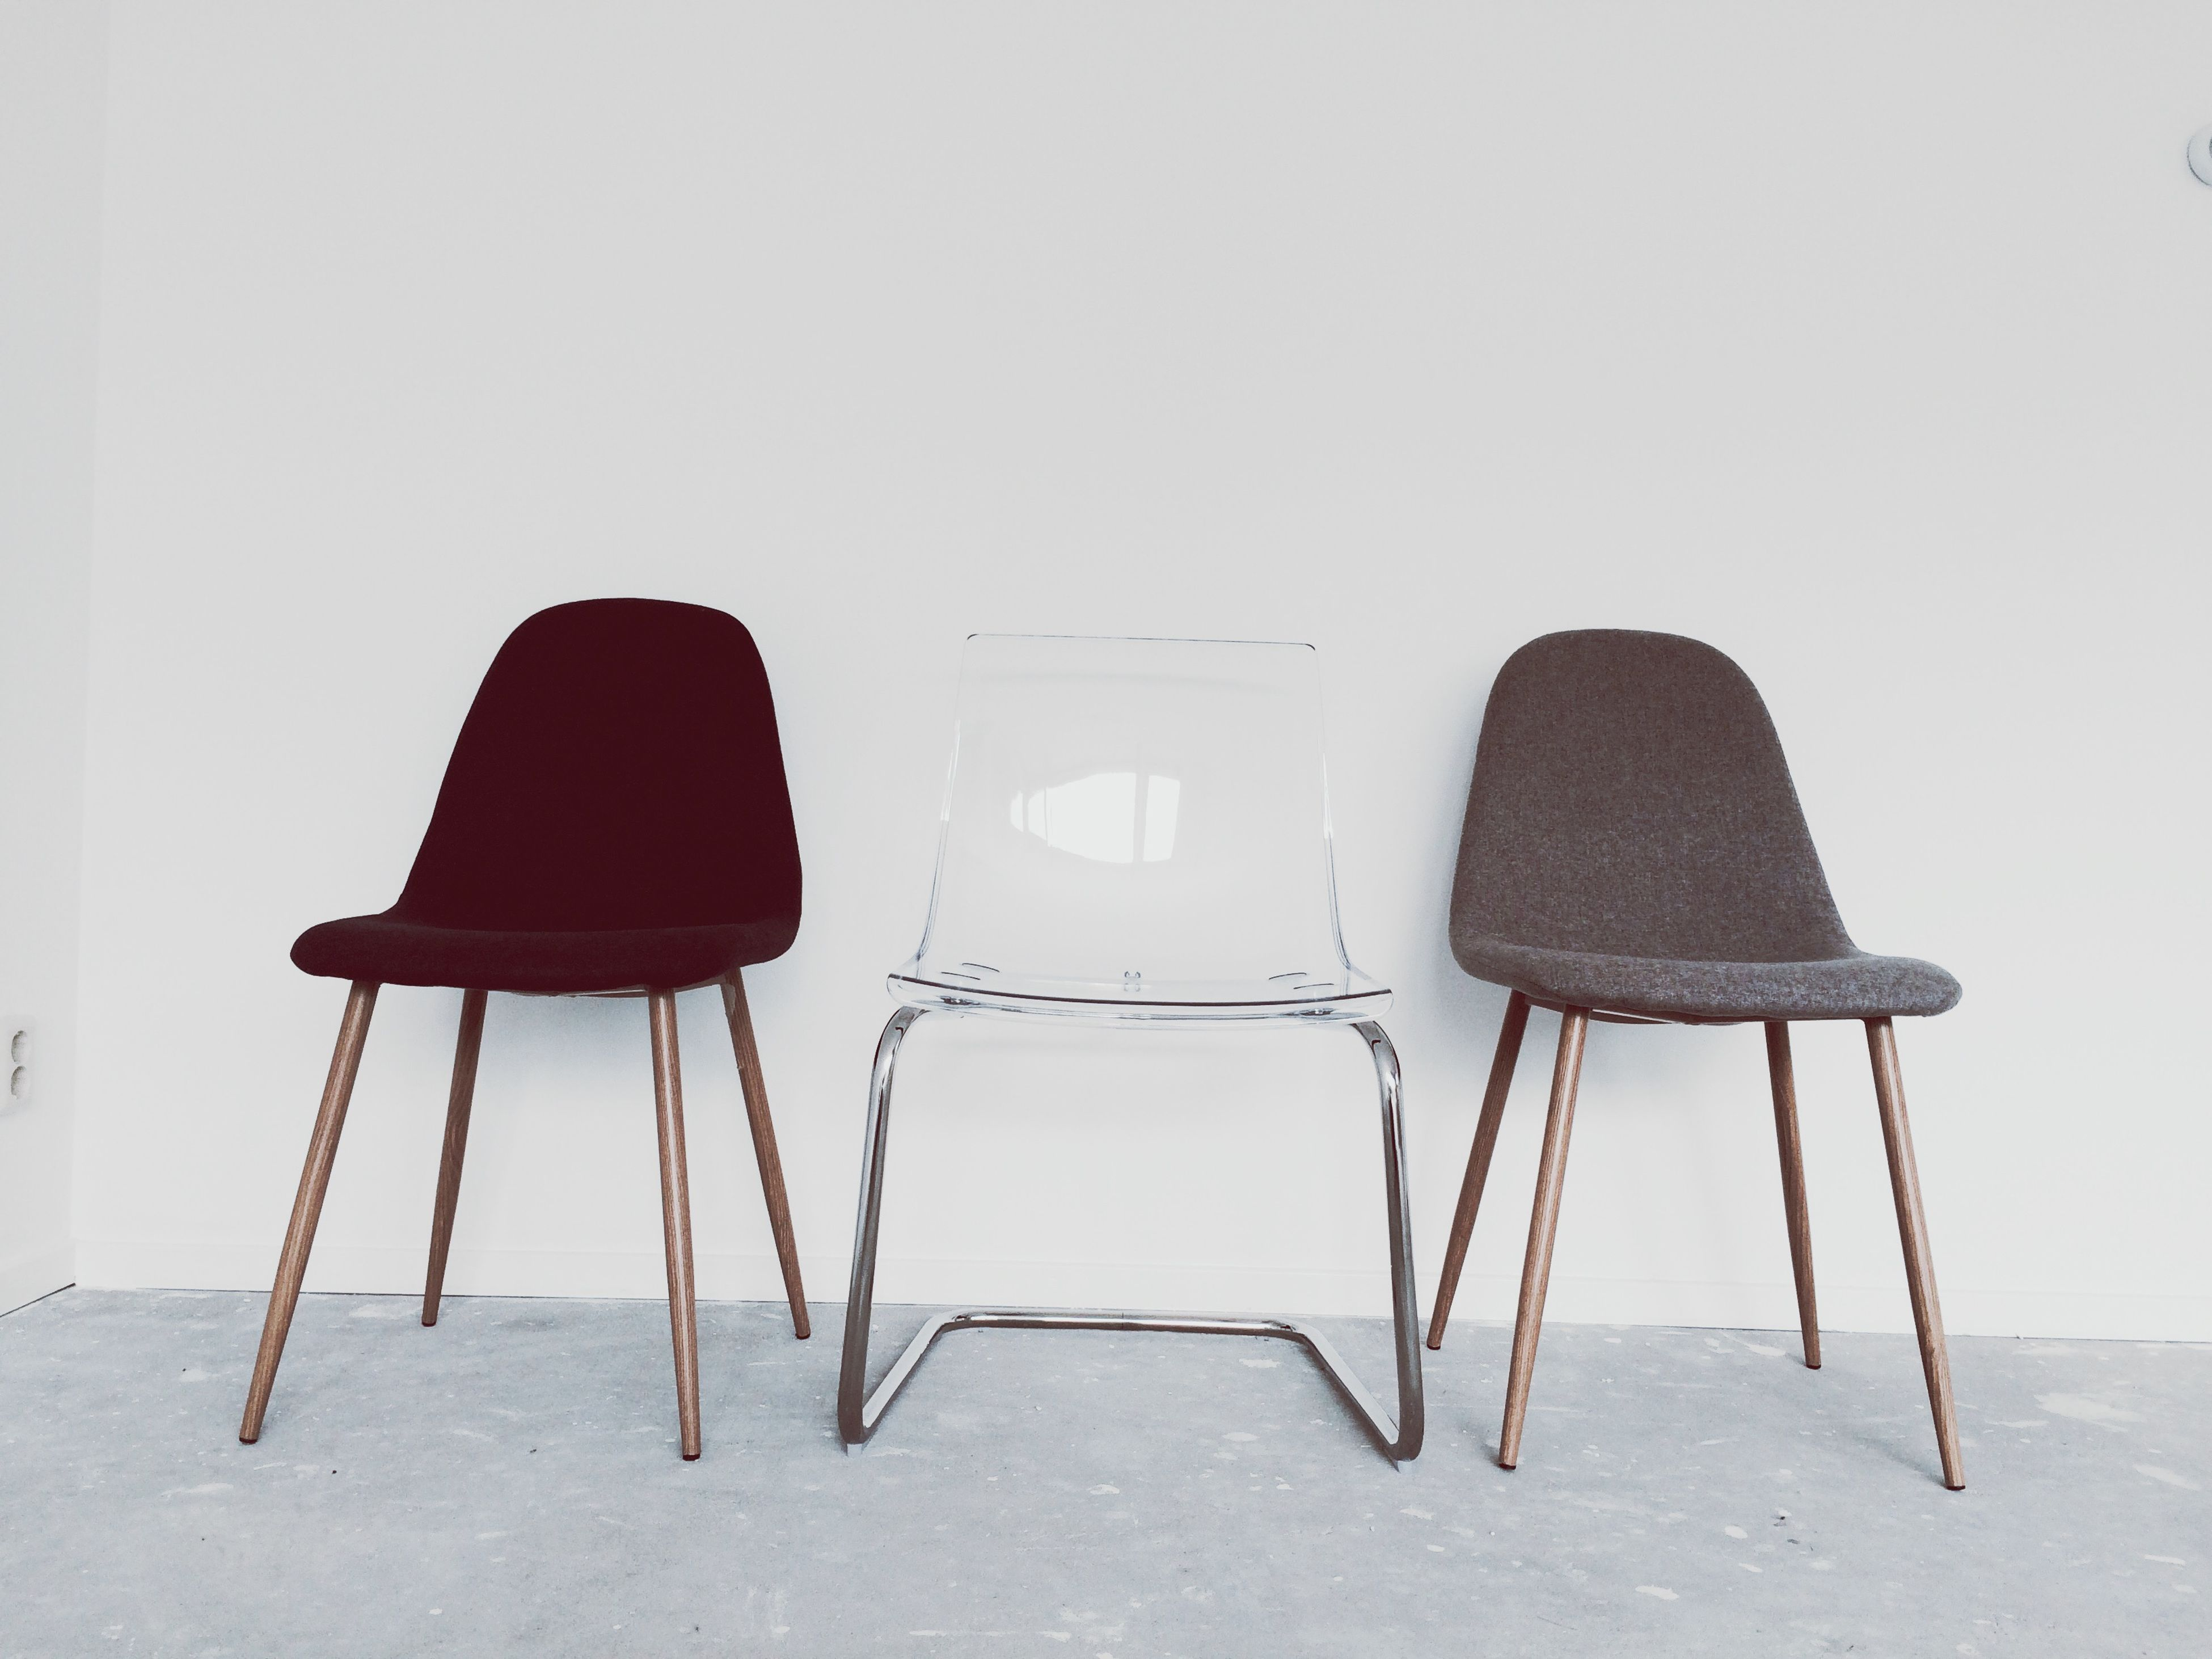 chair, absence, empty, table, indoors, seat, furniture, still life, wall - building feature, wood - material, wall, no people, shadow, arrangement, copy space, day, home interior, flooring, sand, relaxation